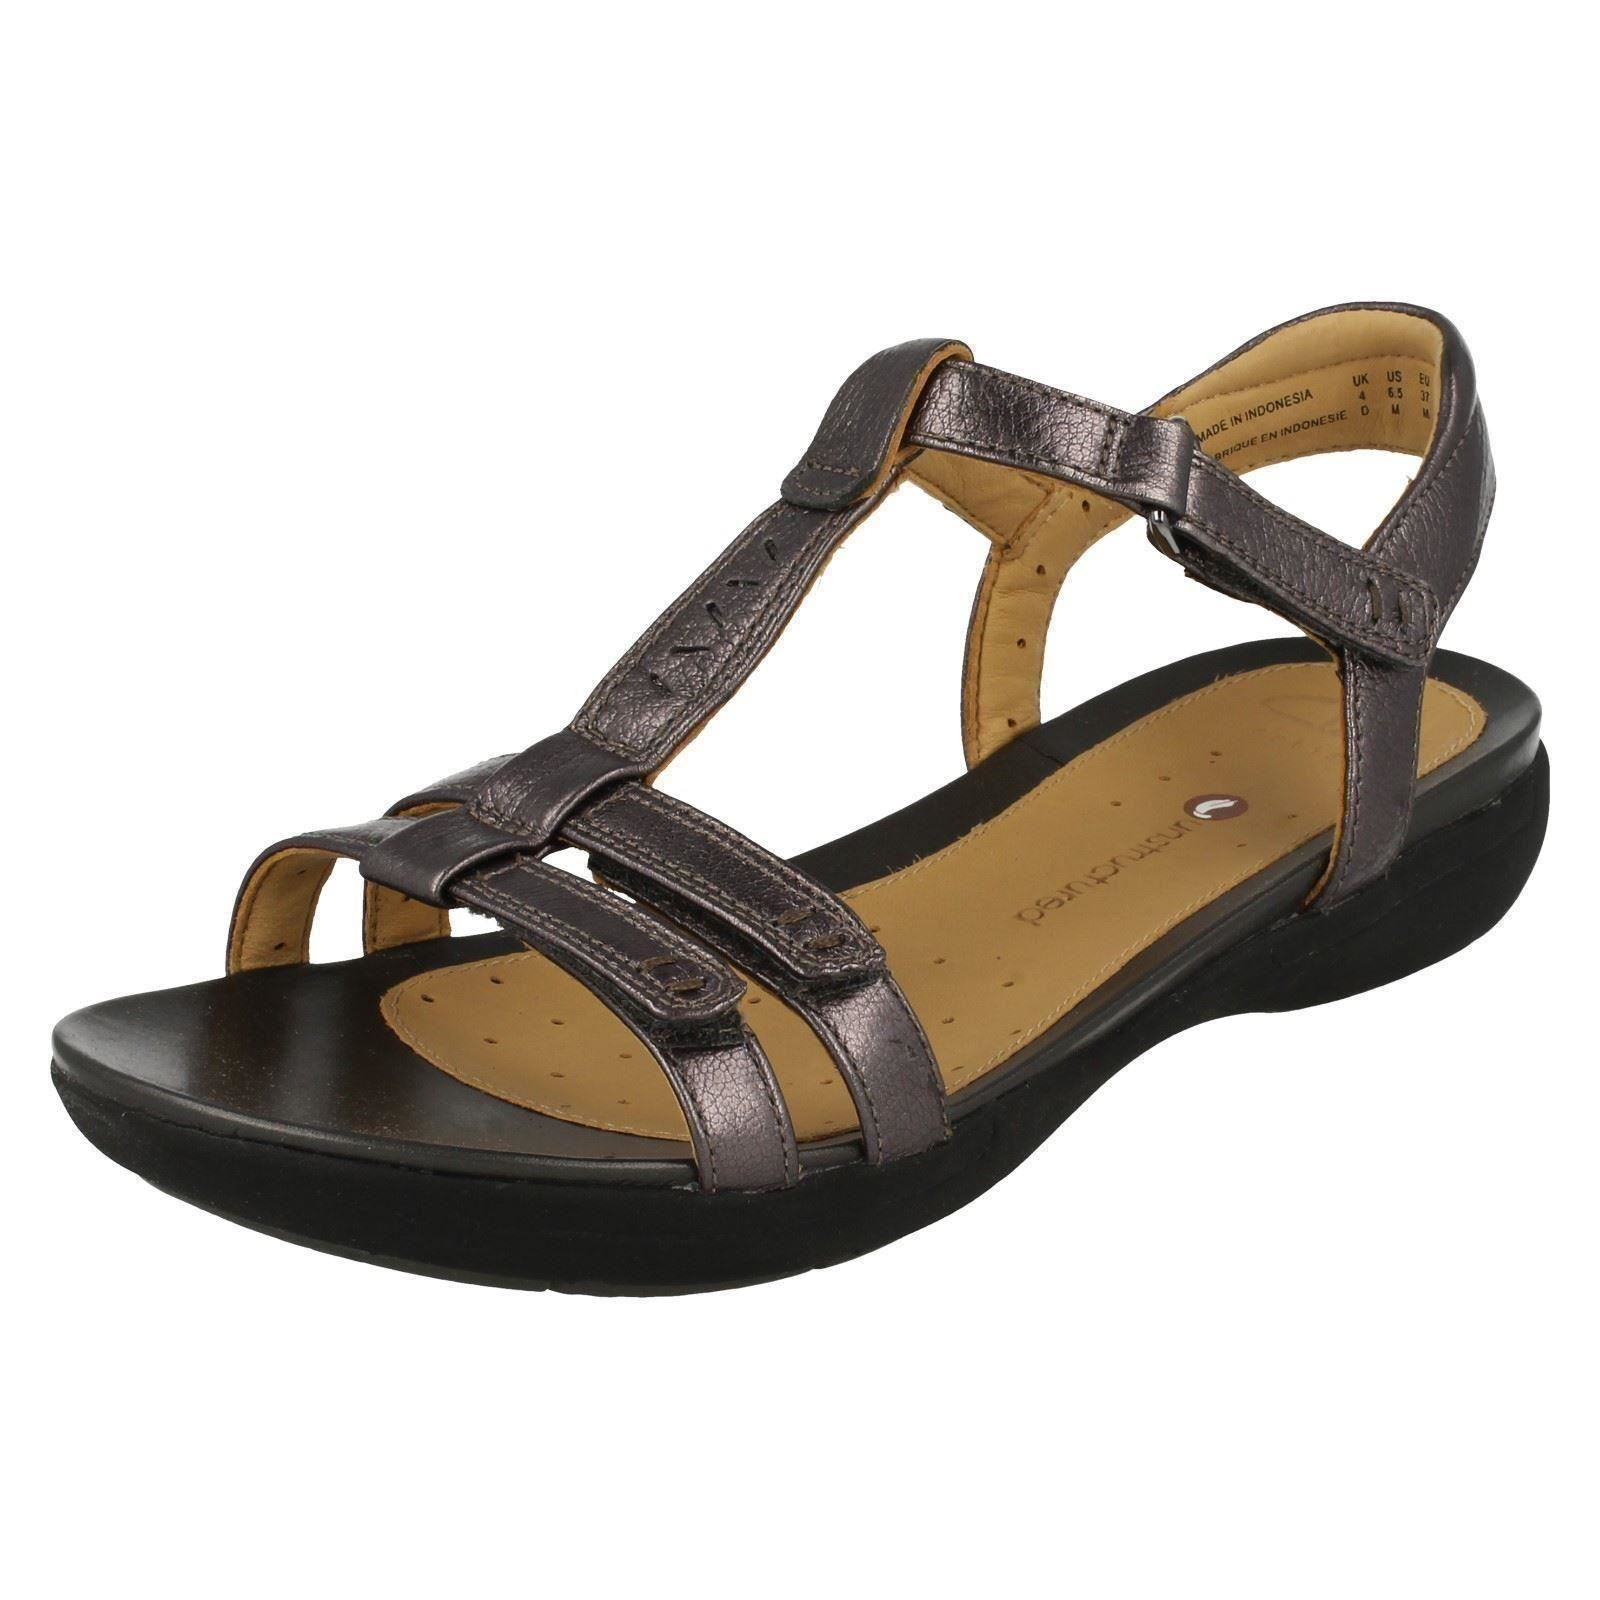 Clarks Unstructured Shoes Women S Sandals